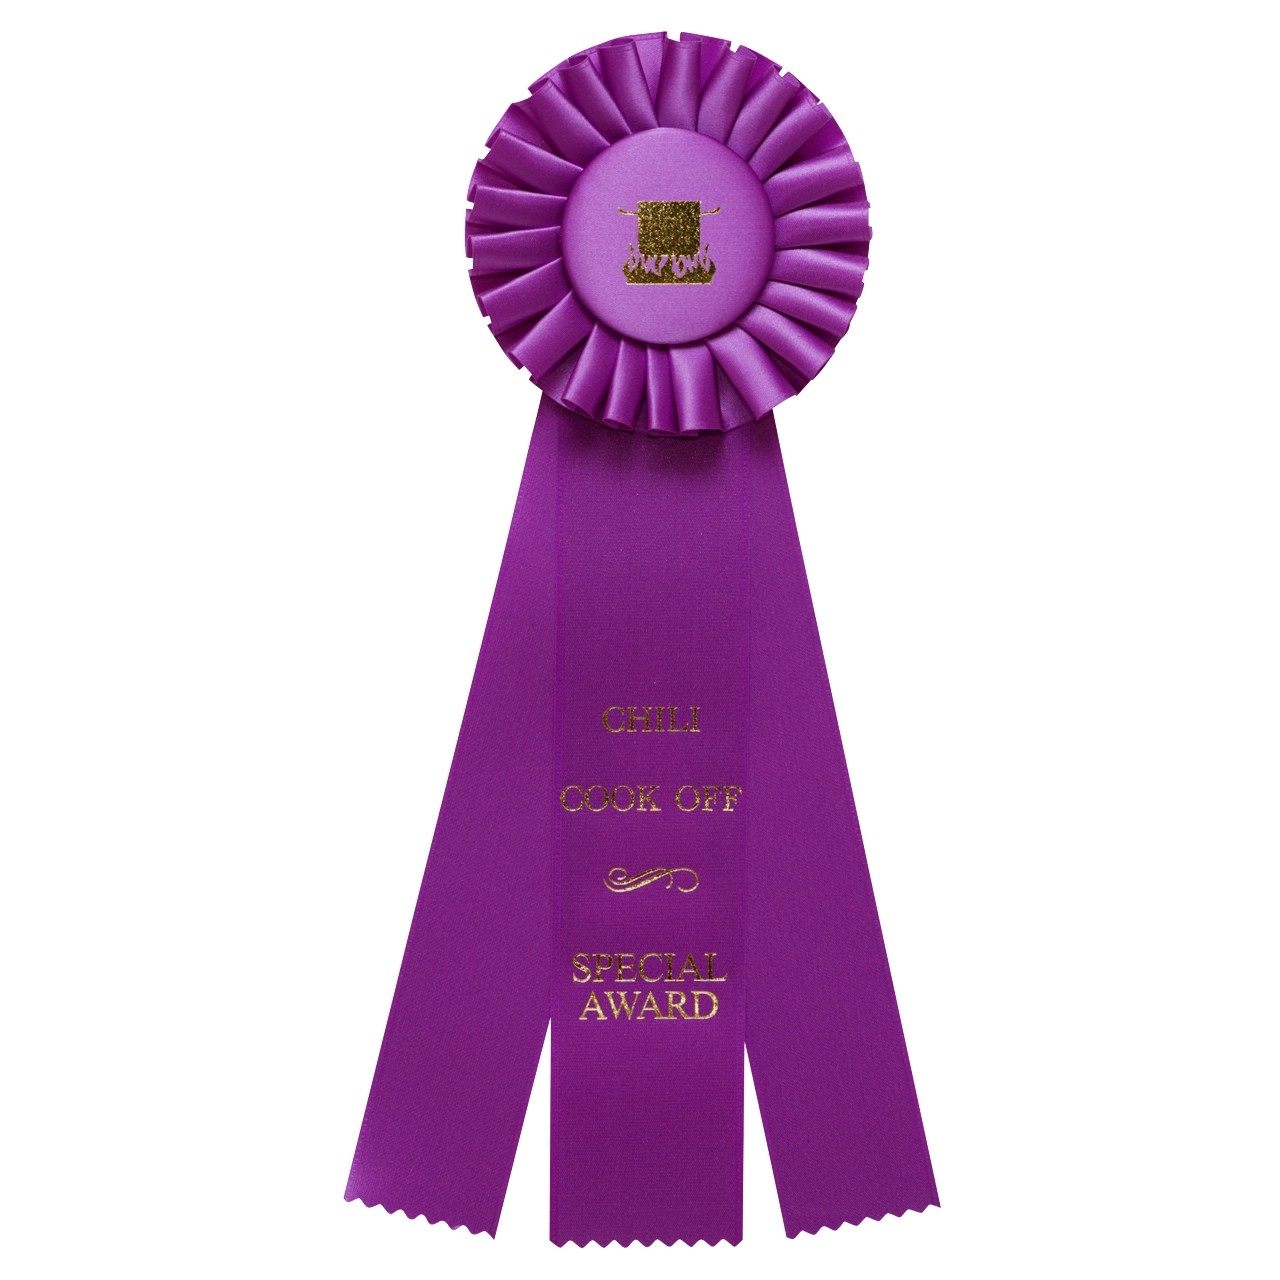 1280x1280 Chili Cook Off Ribbons